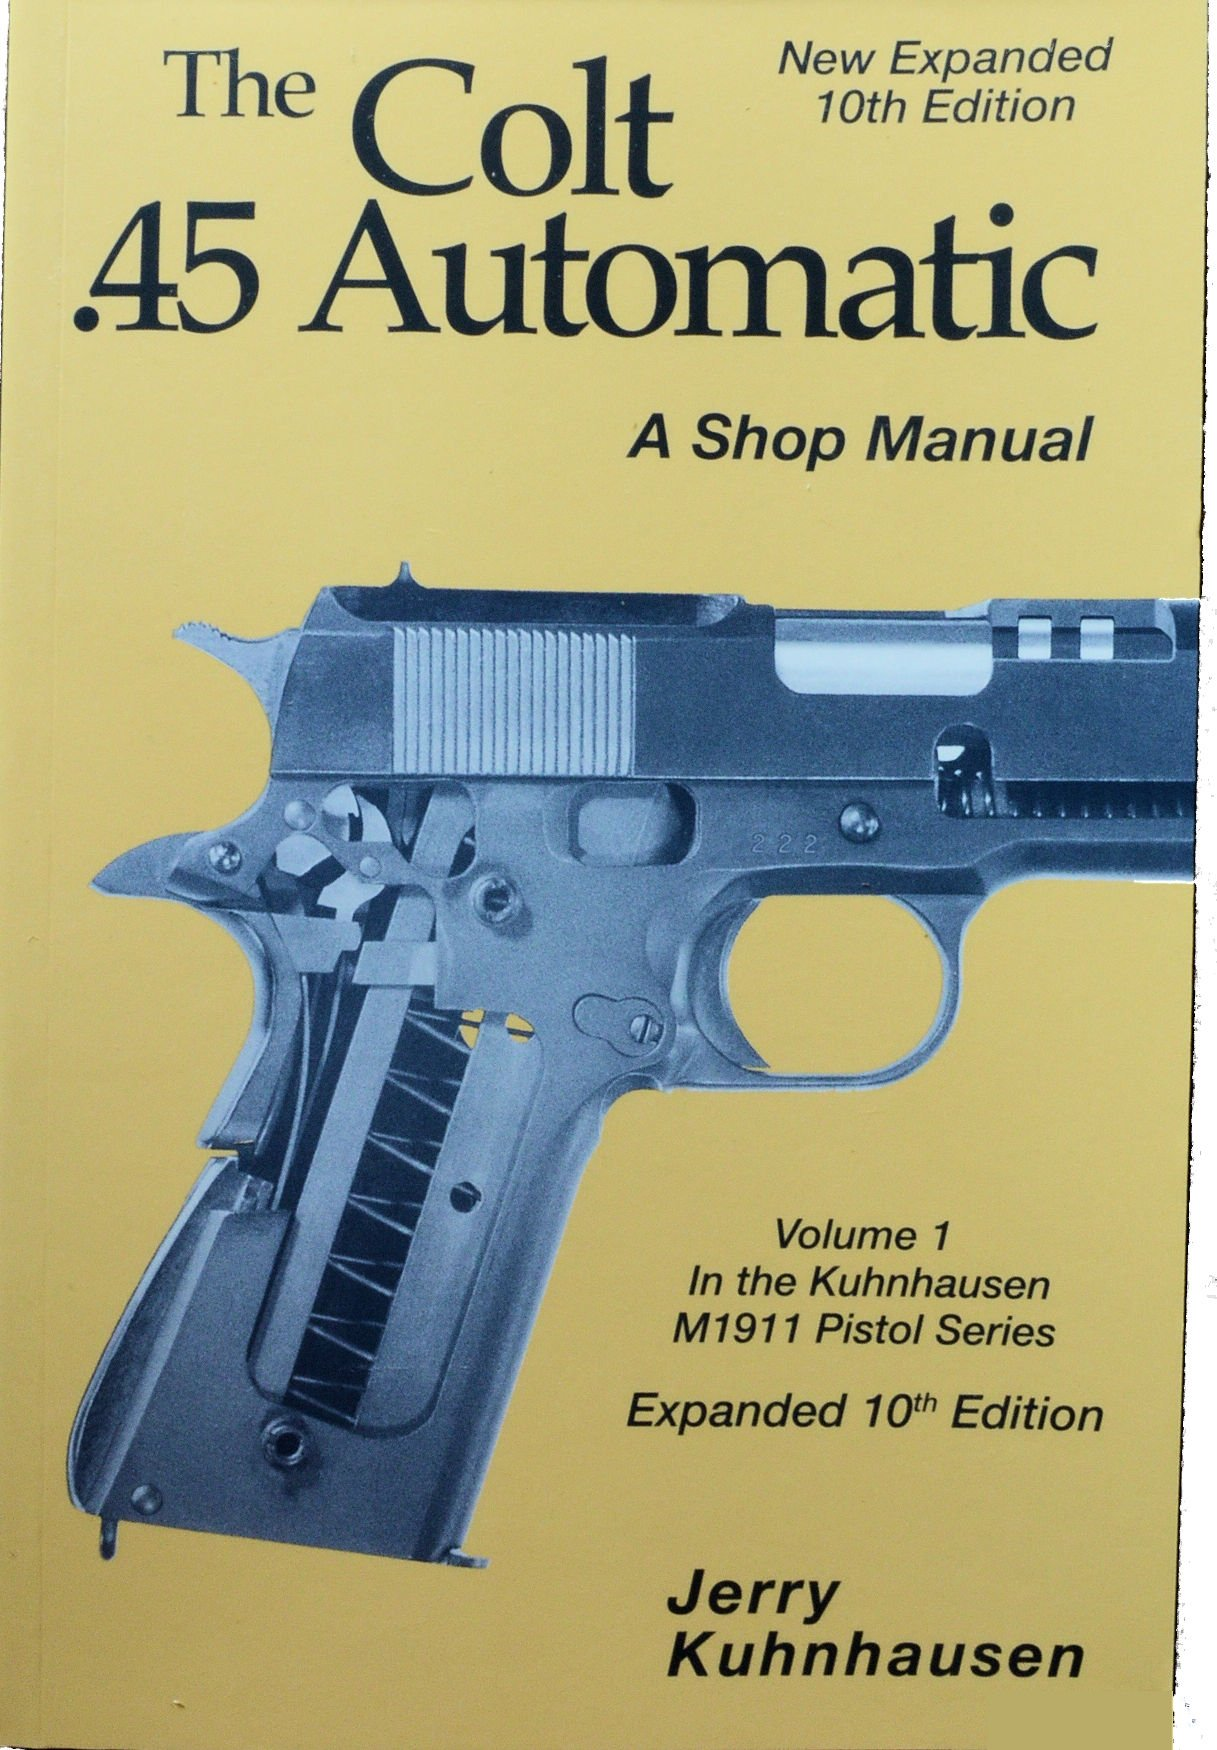 Colt 45 Manual John Deere Snowblower Trs Parts Diagram Car Interior Design Array The Automatic New Expanded 10th Edition Volume 1 Jerry Rh